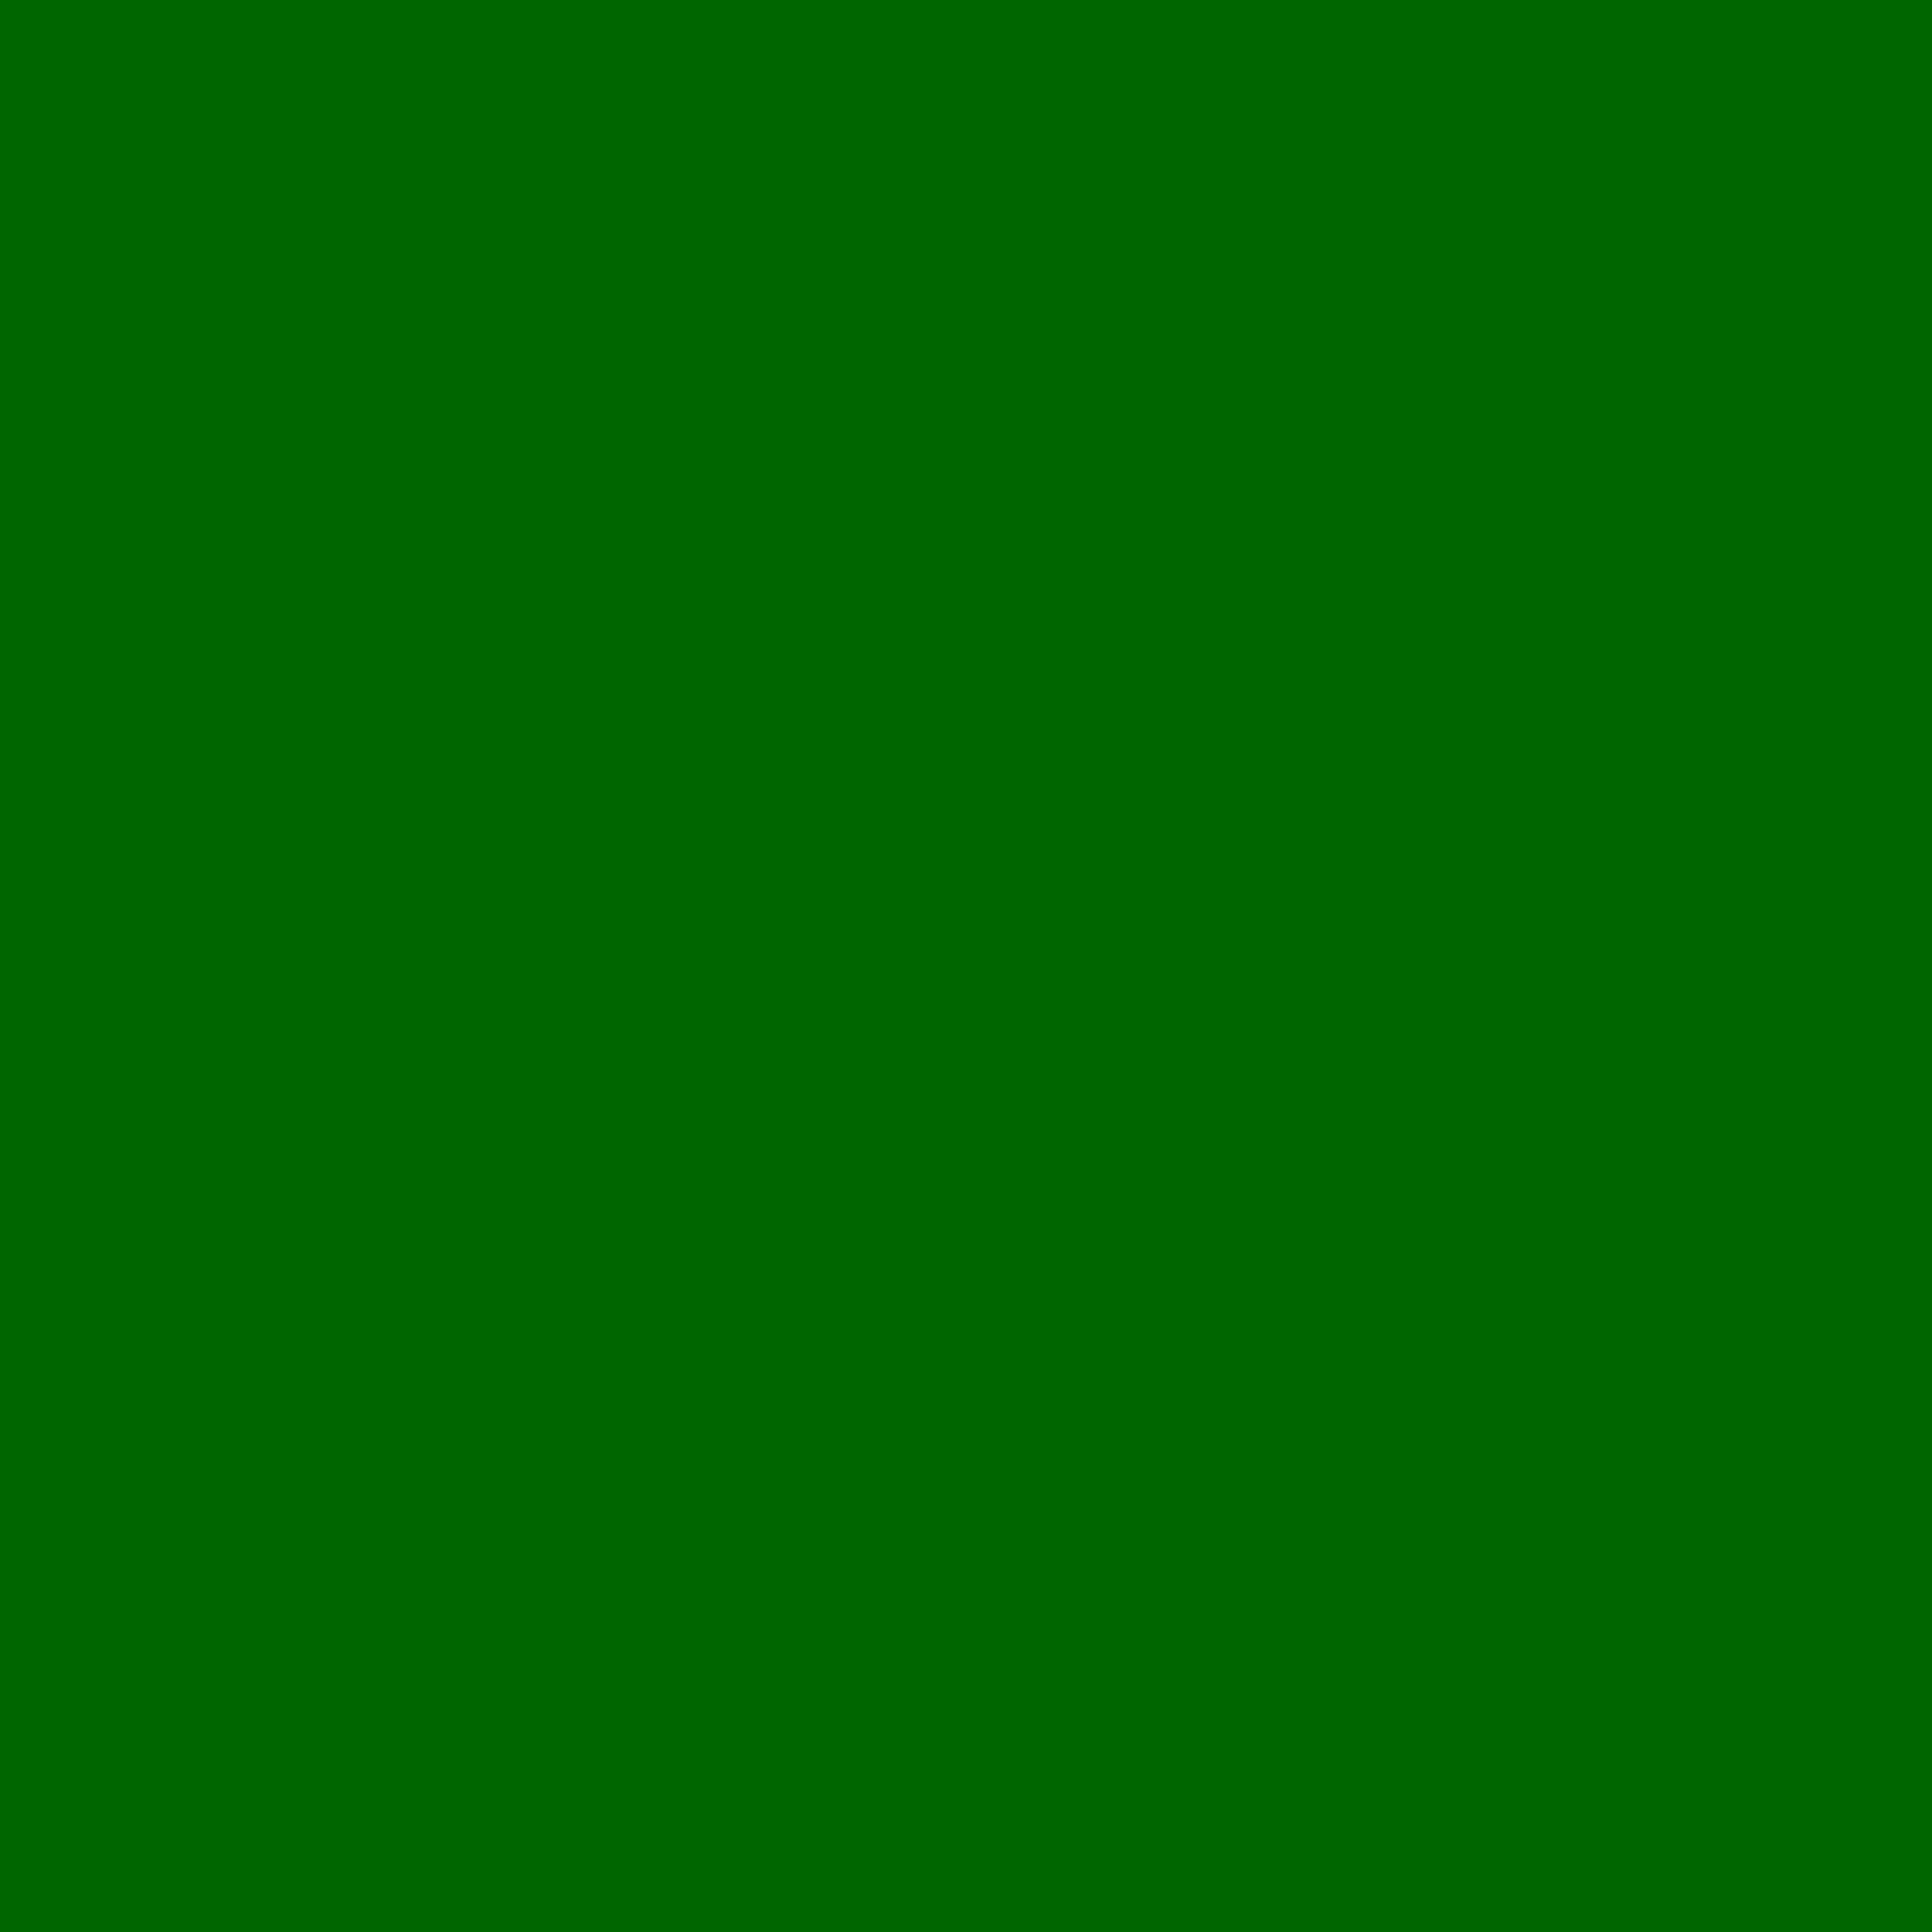 2048x2048 Pakistan Green Solid Color Background